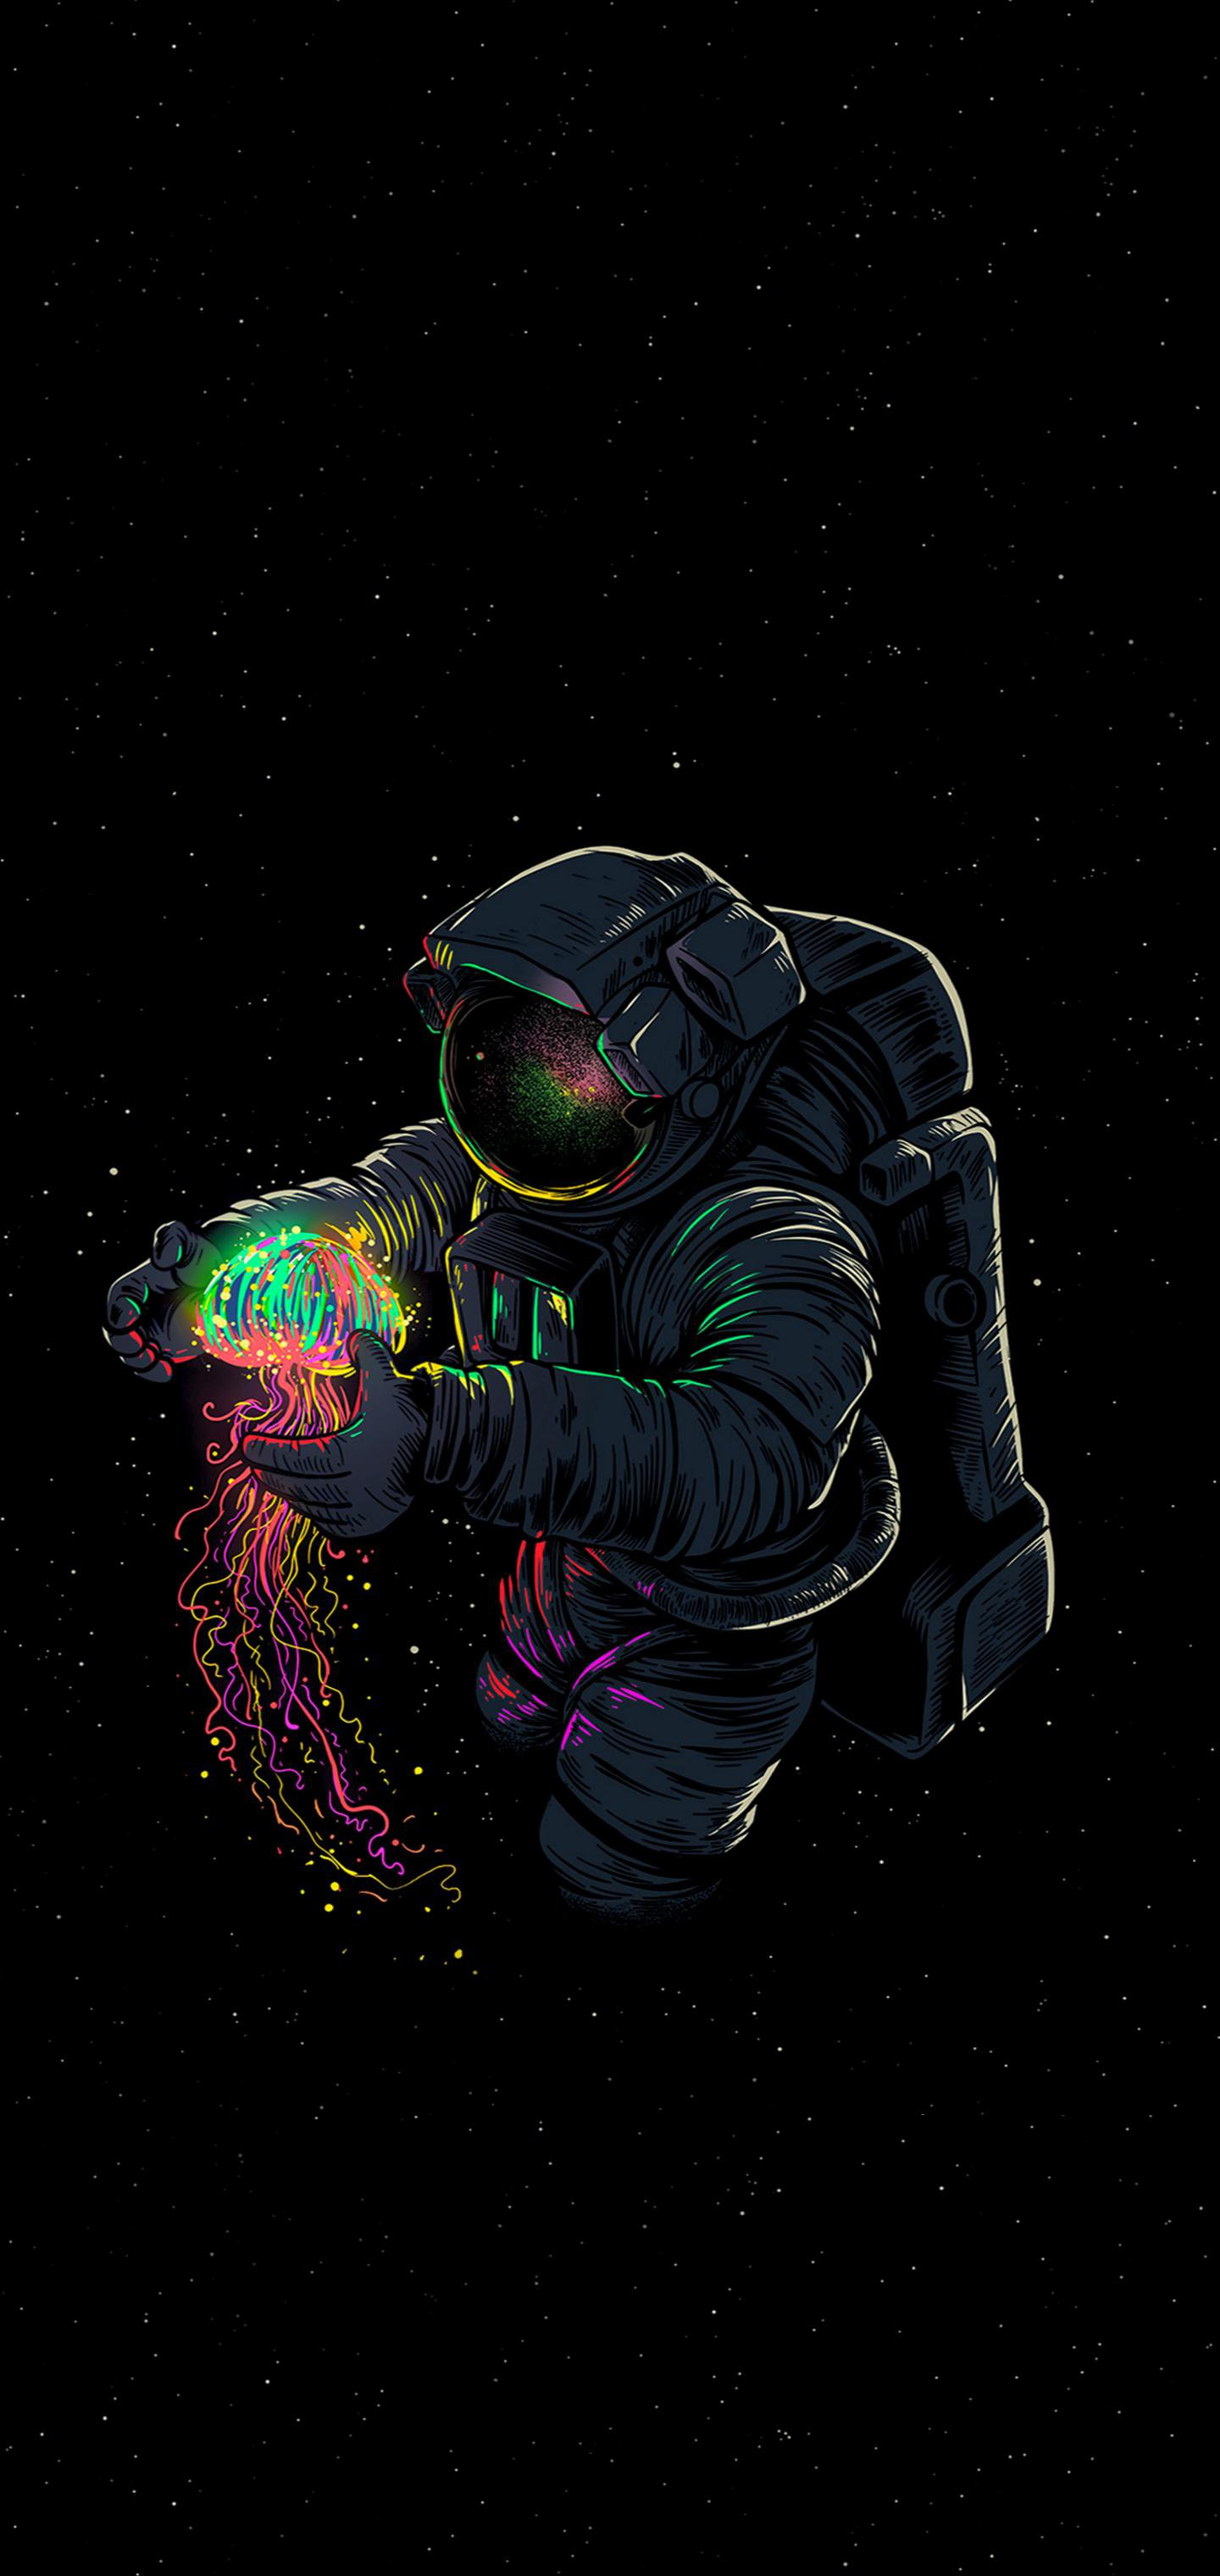 iphone oled wallpaper idownloadblog astronaut jelly fish